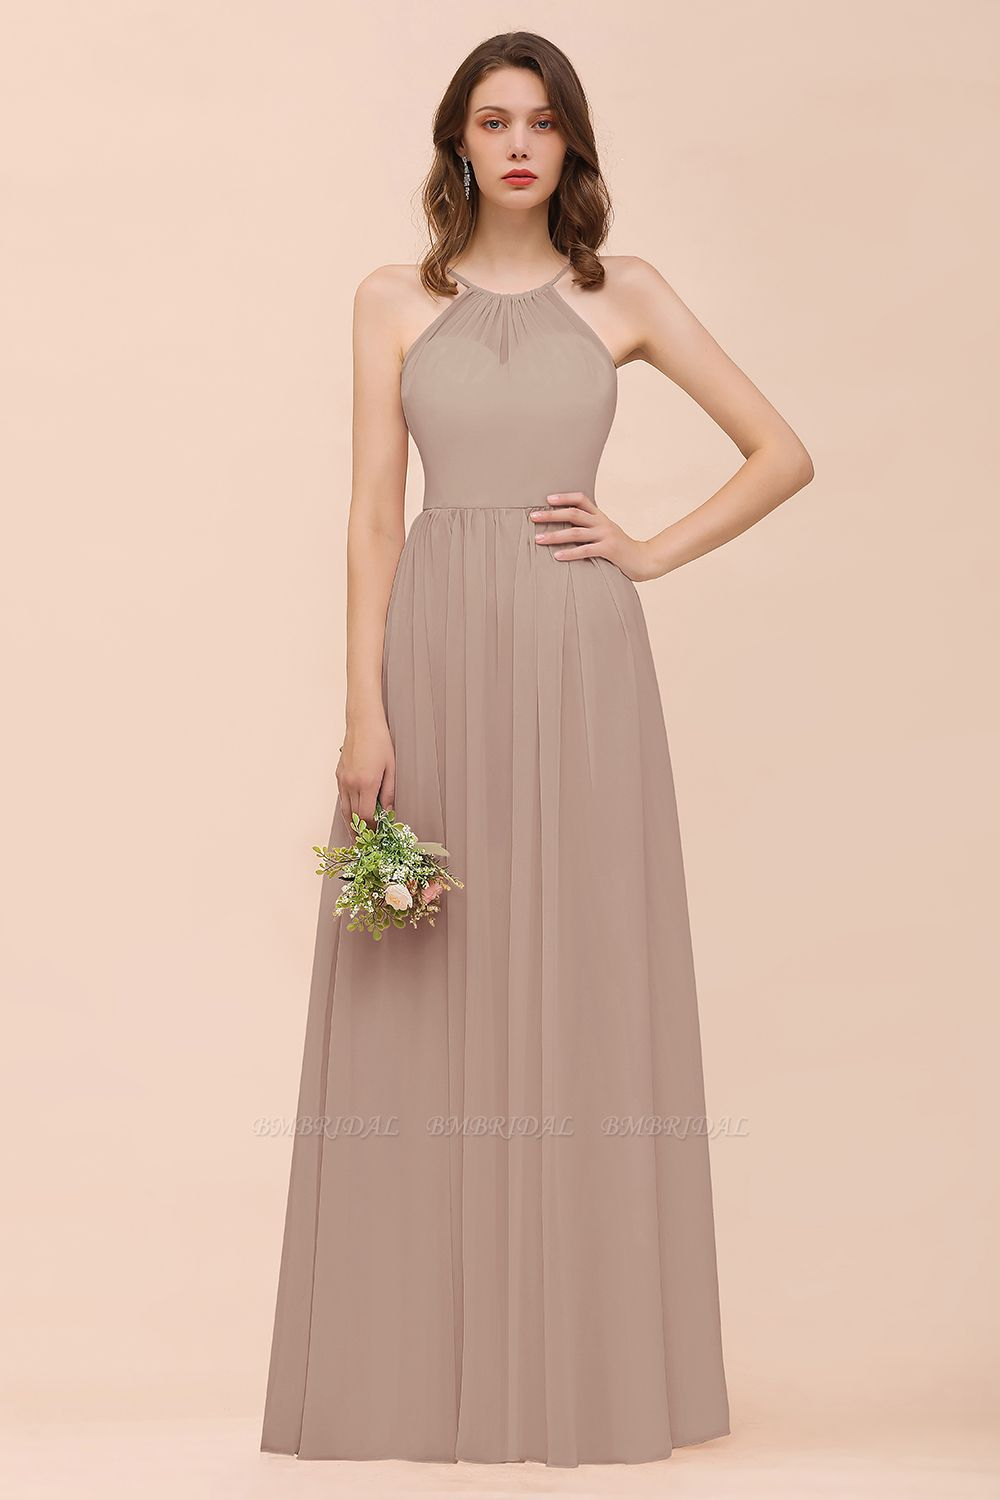 BMbridal Gorgeous Chiffon Halter Ruffle Affordable Long Bridesmaid Dress